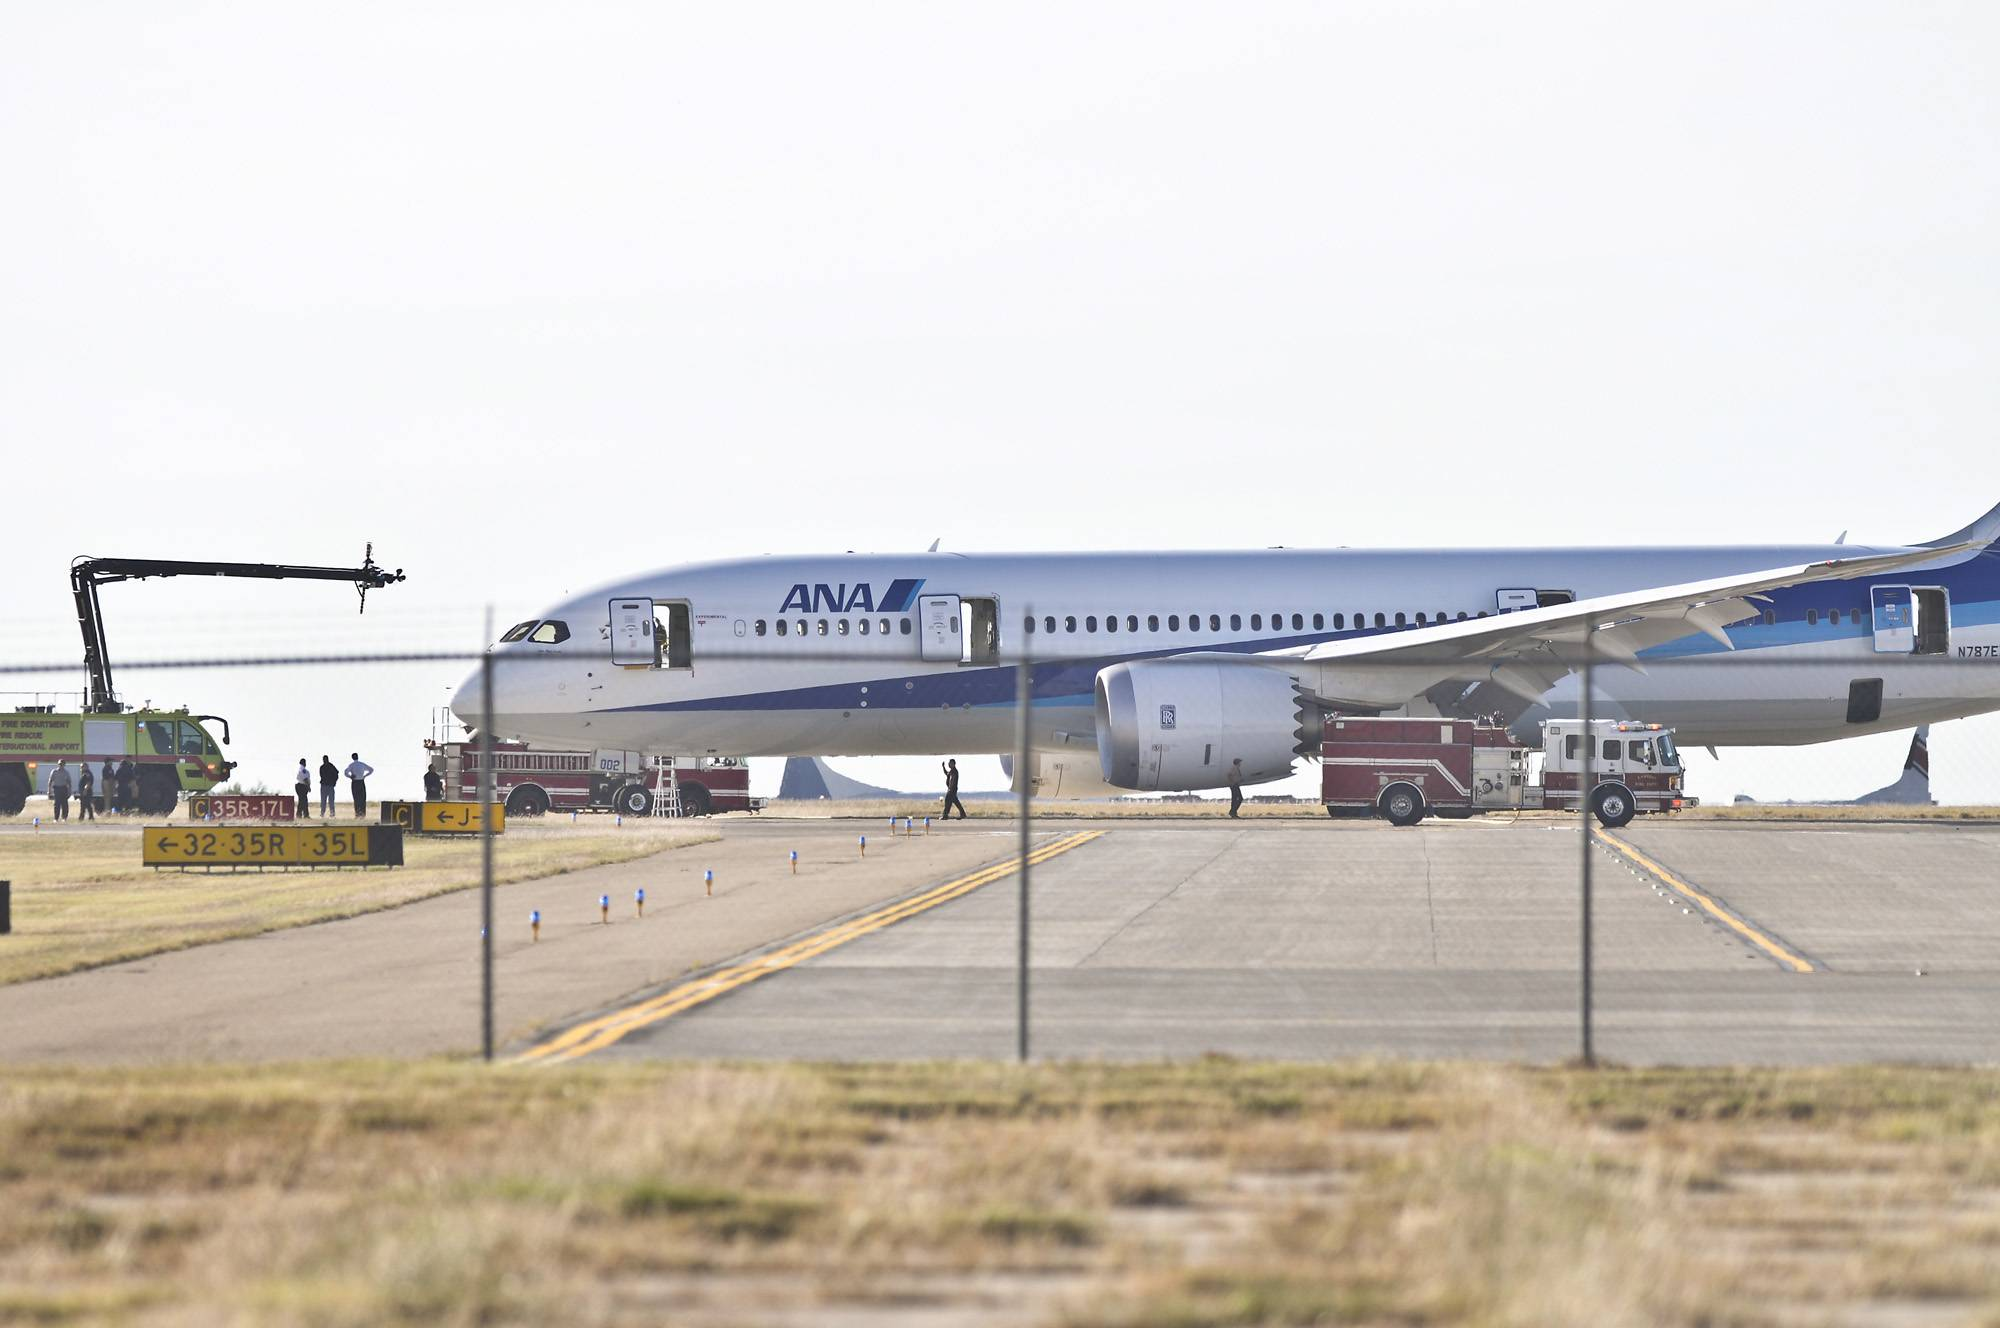 Firefighters and airport officials investigate the scene of an incident involving a Boeing 787 jetliner at the Laredo International Airport Tuesday.